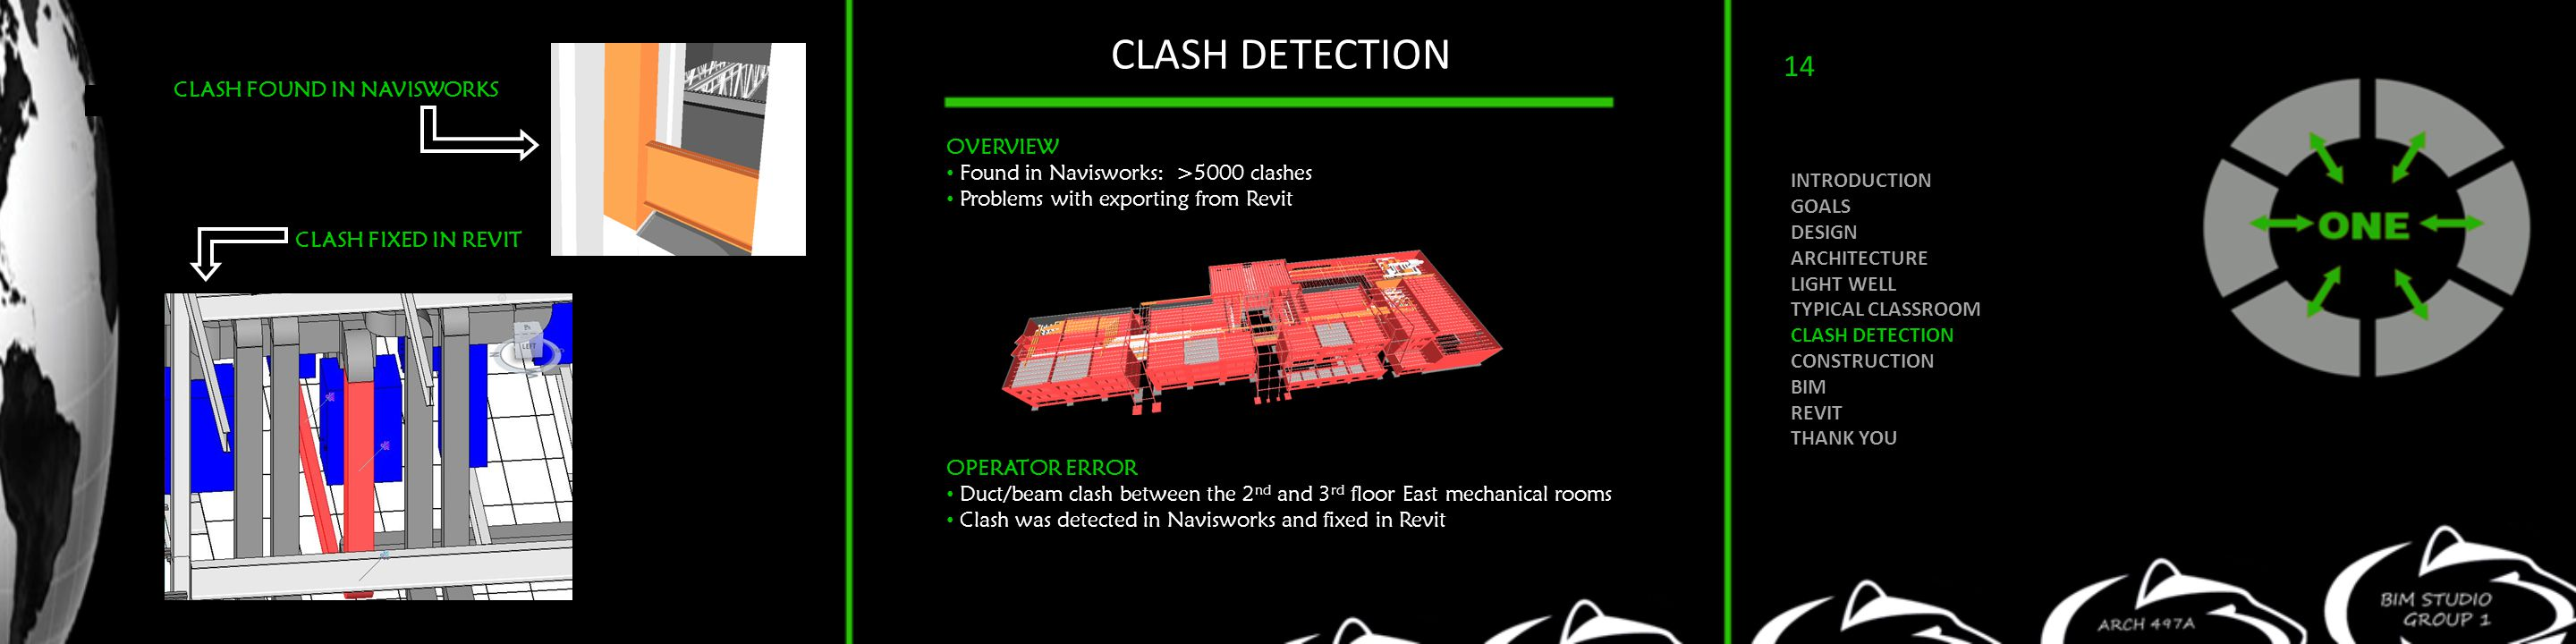 CLASH DETECTION OPERATOR ERROR Duct/beam clash between the 2 nd and 3 rd floor East mechanical rooms Clash was detected in Navisworks and fixed in Revit OVERVIEW Found in Navisworks: >5000 clashes Problems with exporting from Revit CLASH FOUND IN NAVISWORKS CLASH FIXED IN REVIT INTRODUCTION GOALS DESIGN ARCHITECTURE LIGHT WELL TYPICAL CLASSROOM CLASH DETECTION CONSTRUCTION BIM REVIT THANK YOU 14